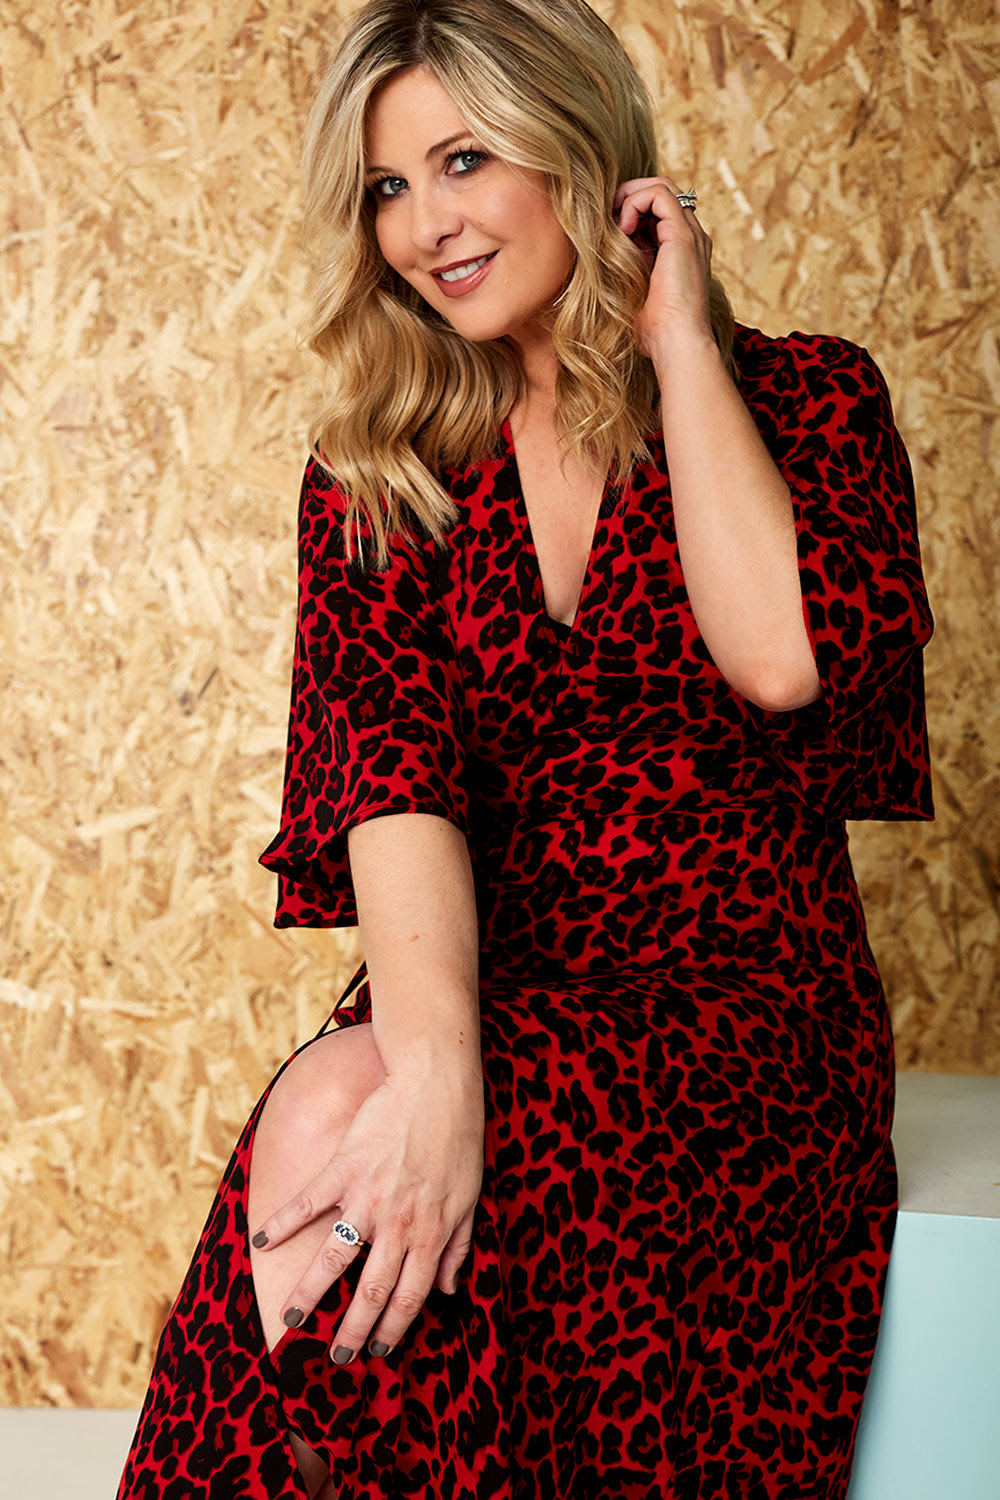 iCLOTHING - In conversation with: LAURA WOODS